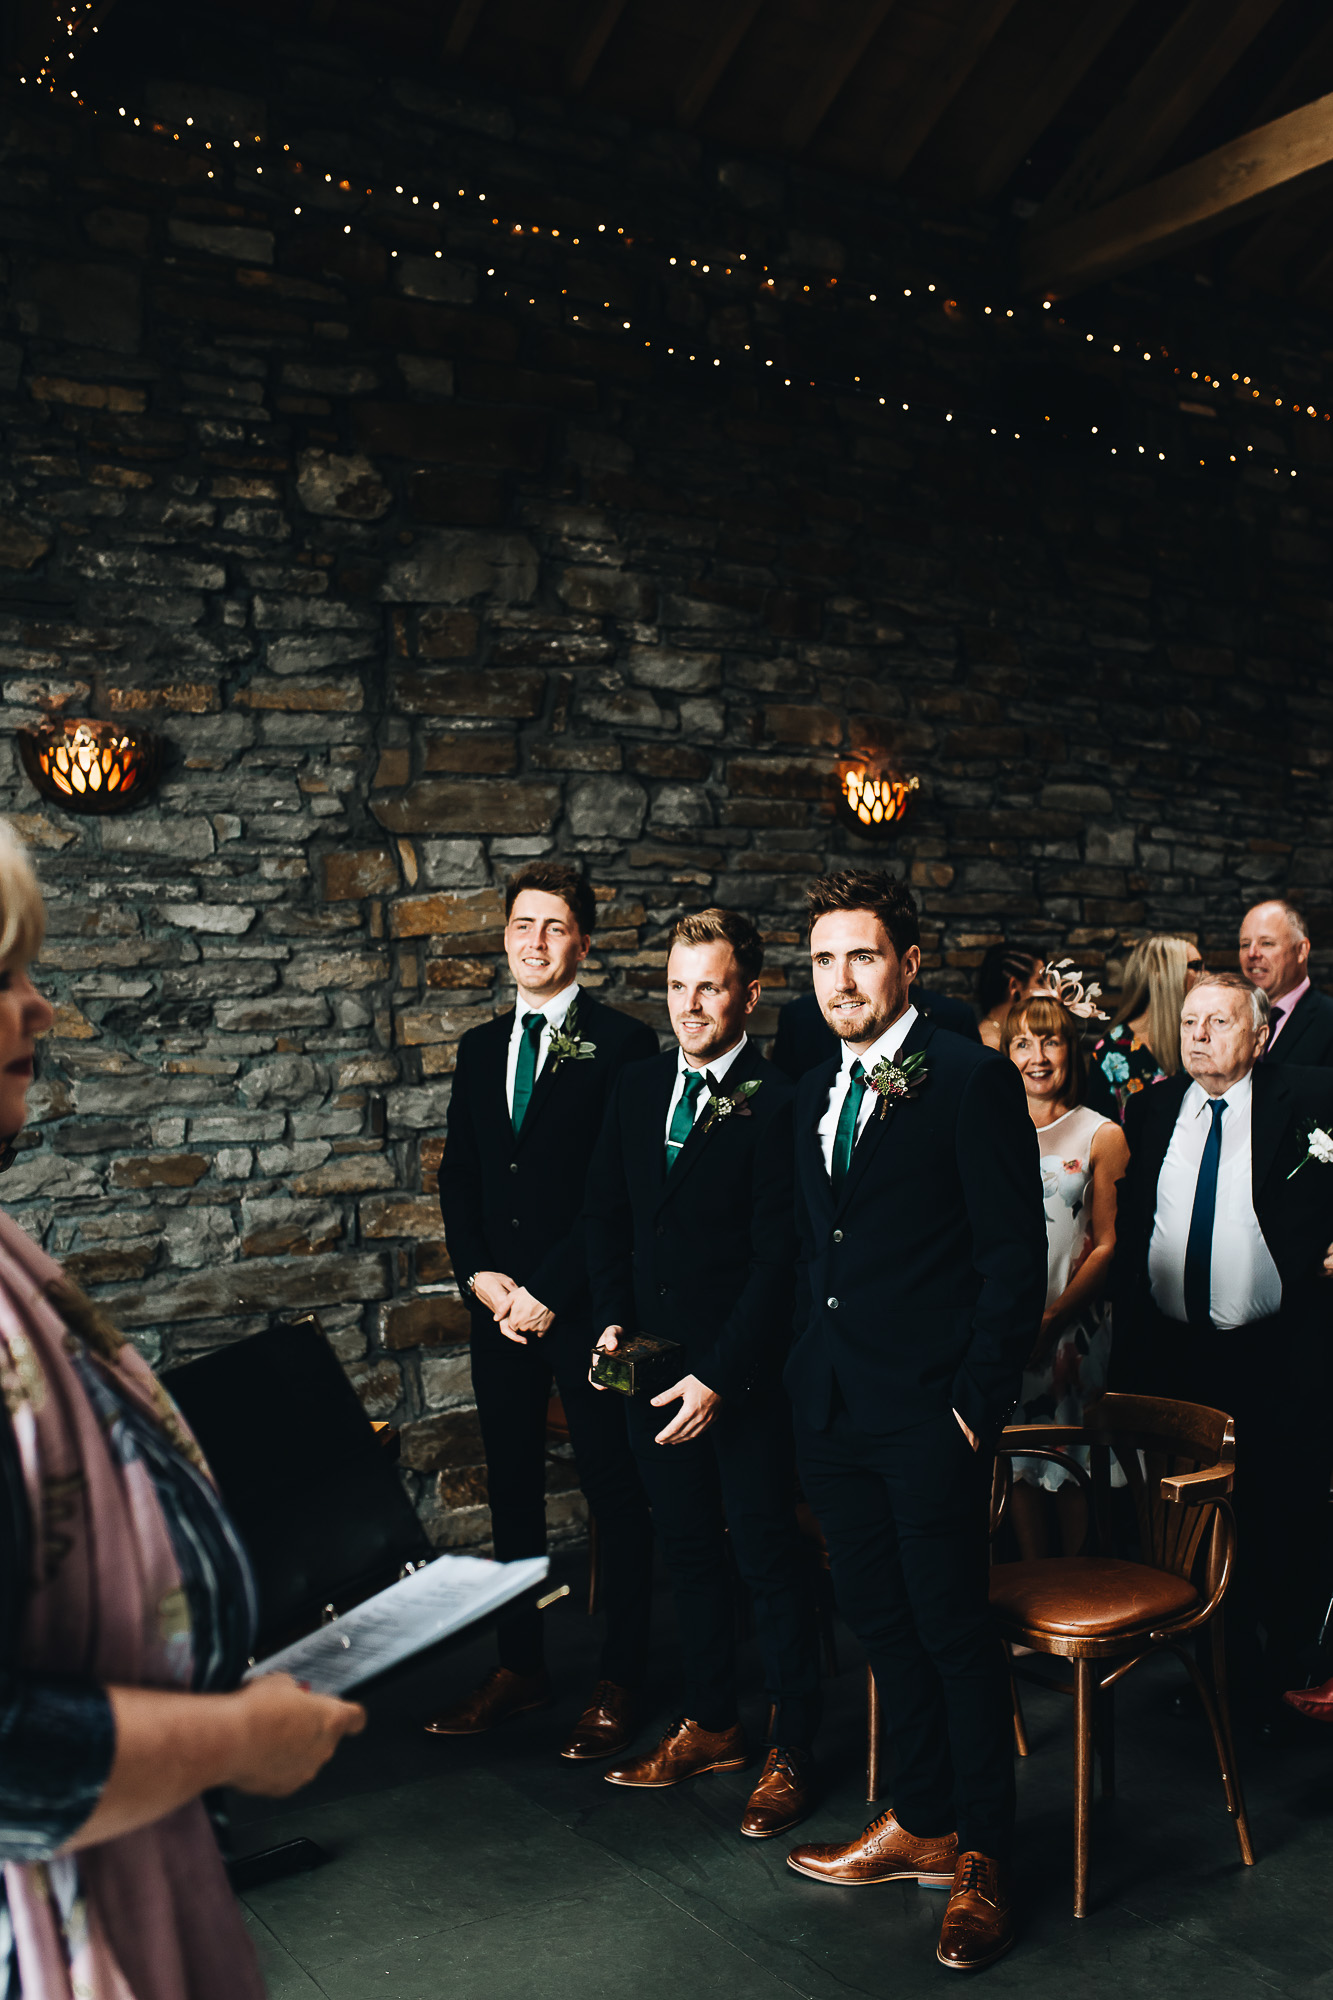 The Groom and his Groomsmen | Wedding Photographer | Swansea | South Wales